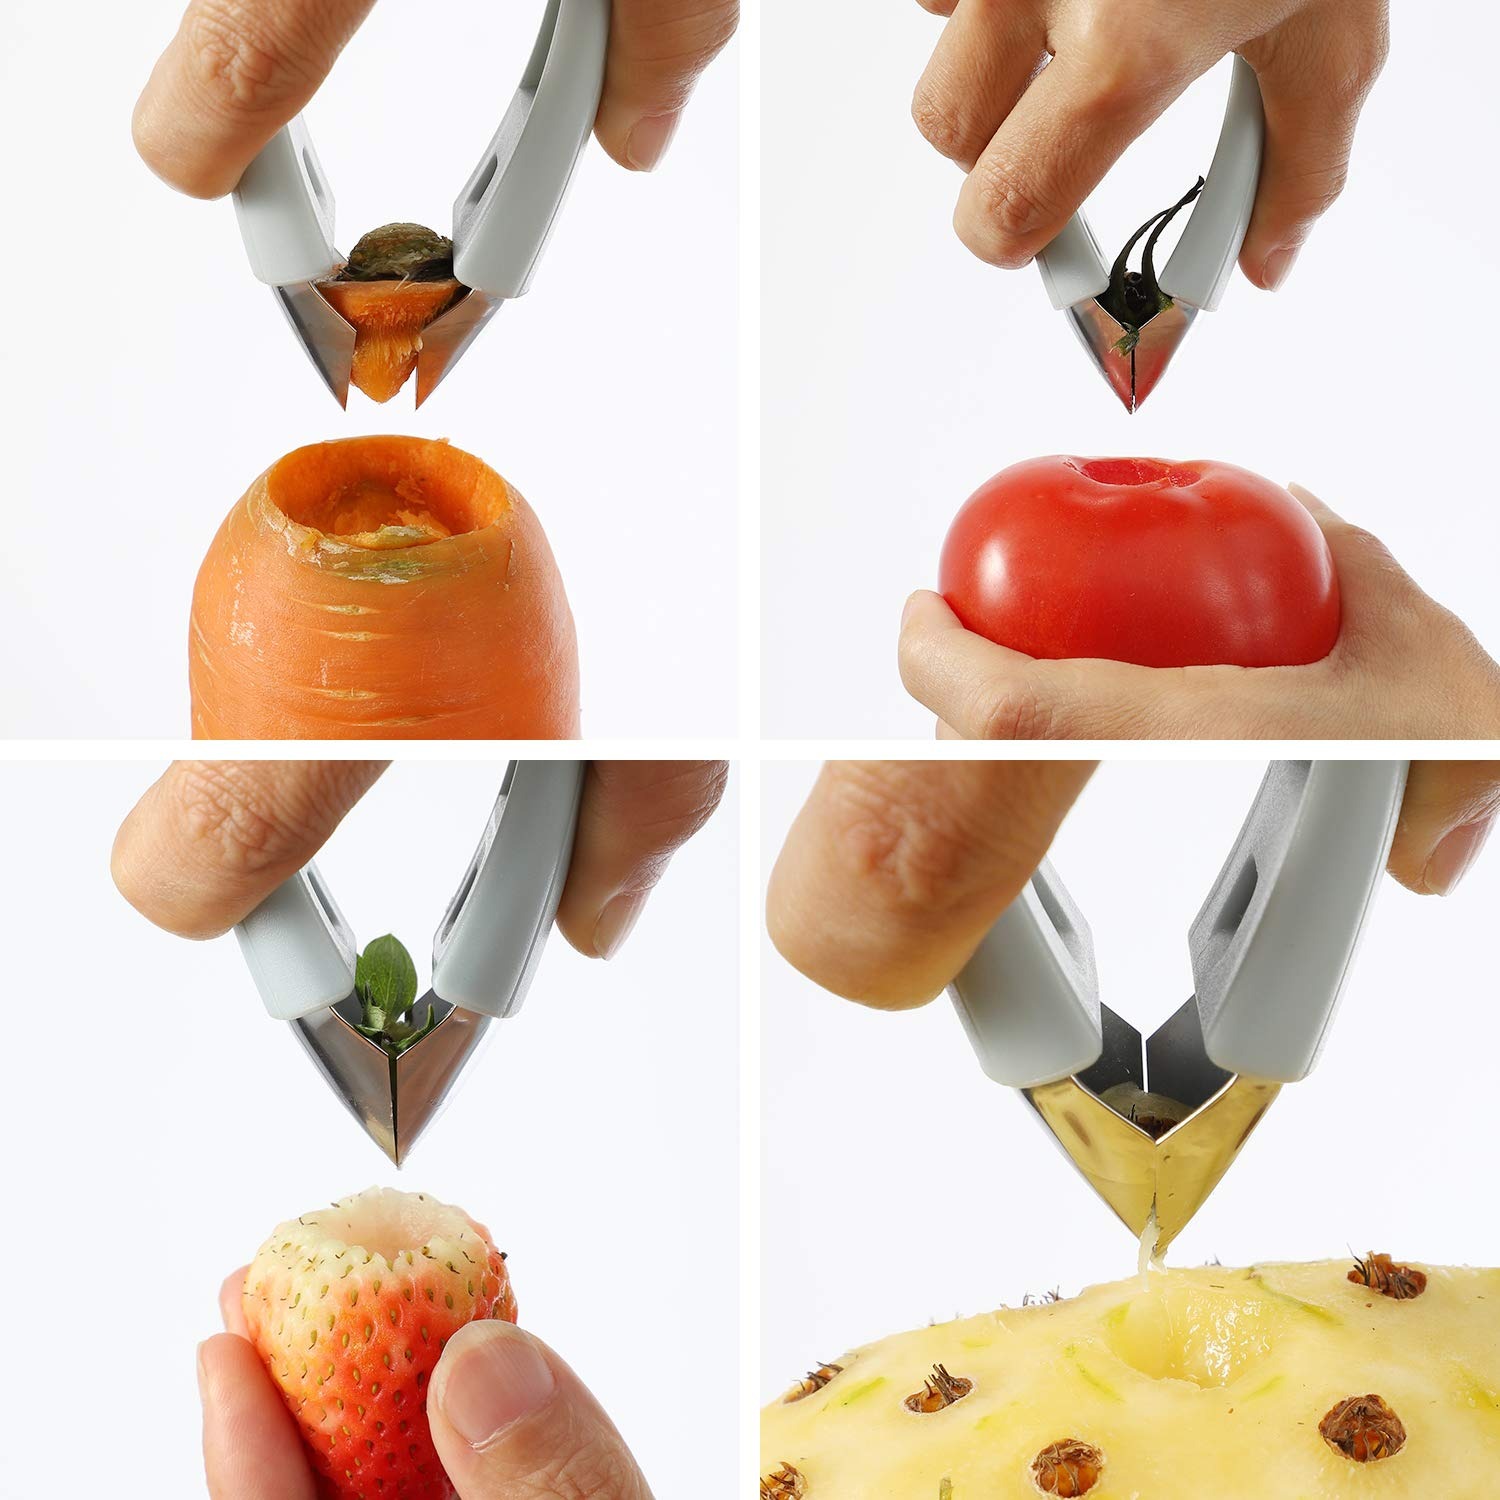 strawberry huller tool